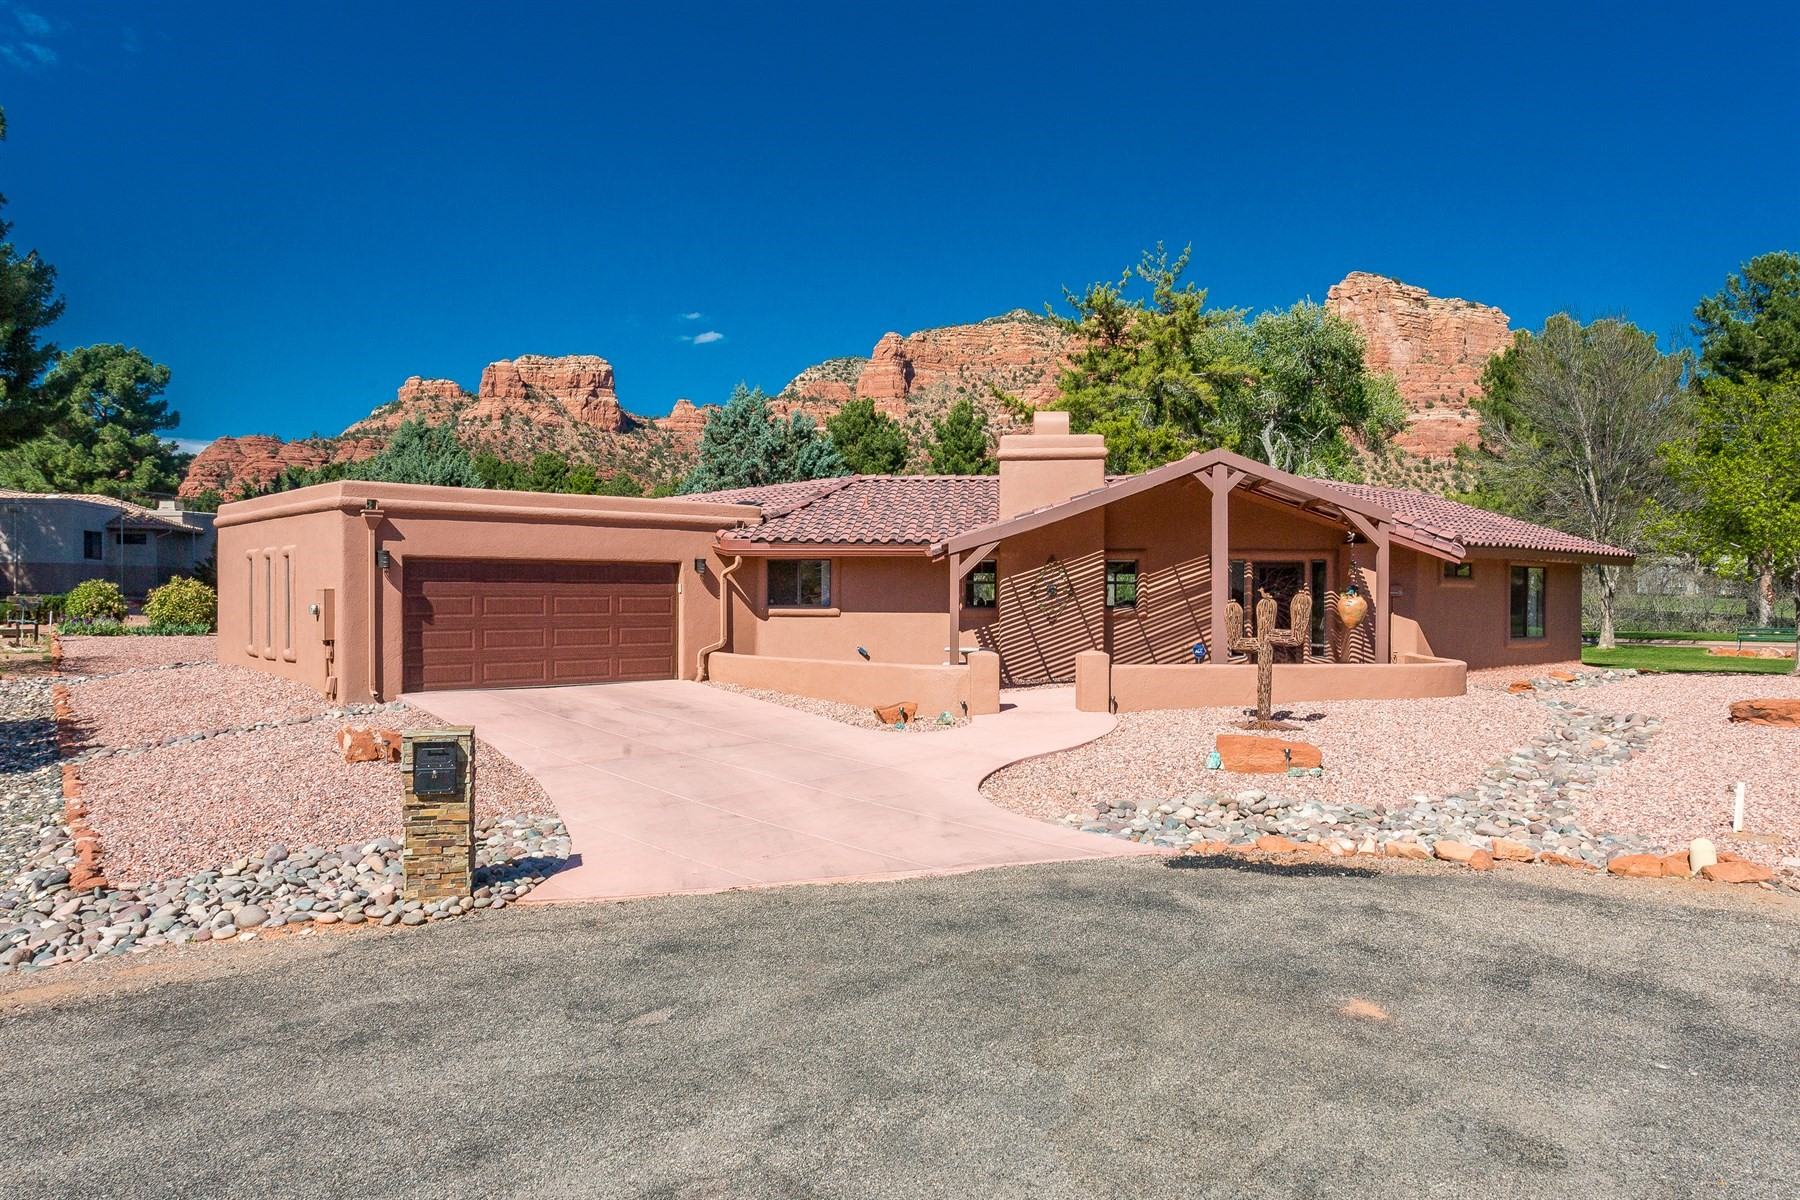 Single Family Home for Sale at Gorgeous home with unobstructed Red Rock and OCCC Golf Course Views 35 Vaquero Cir Sedona, Arizona, 86351 United States